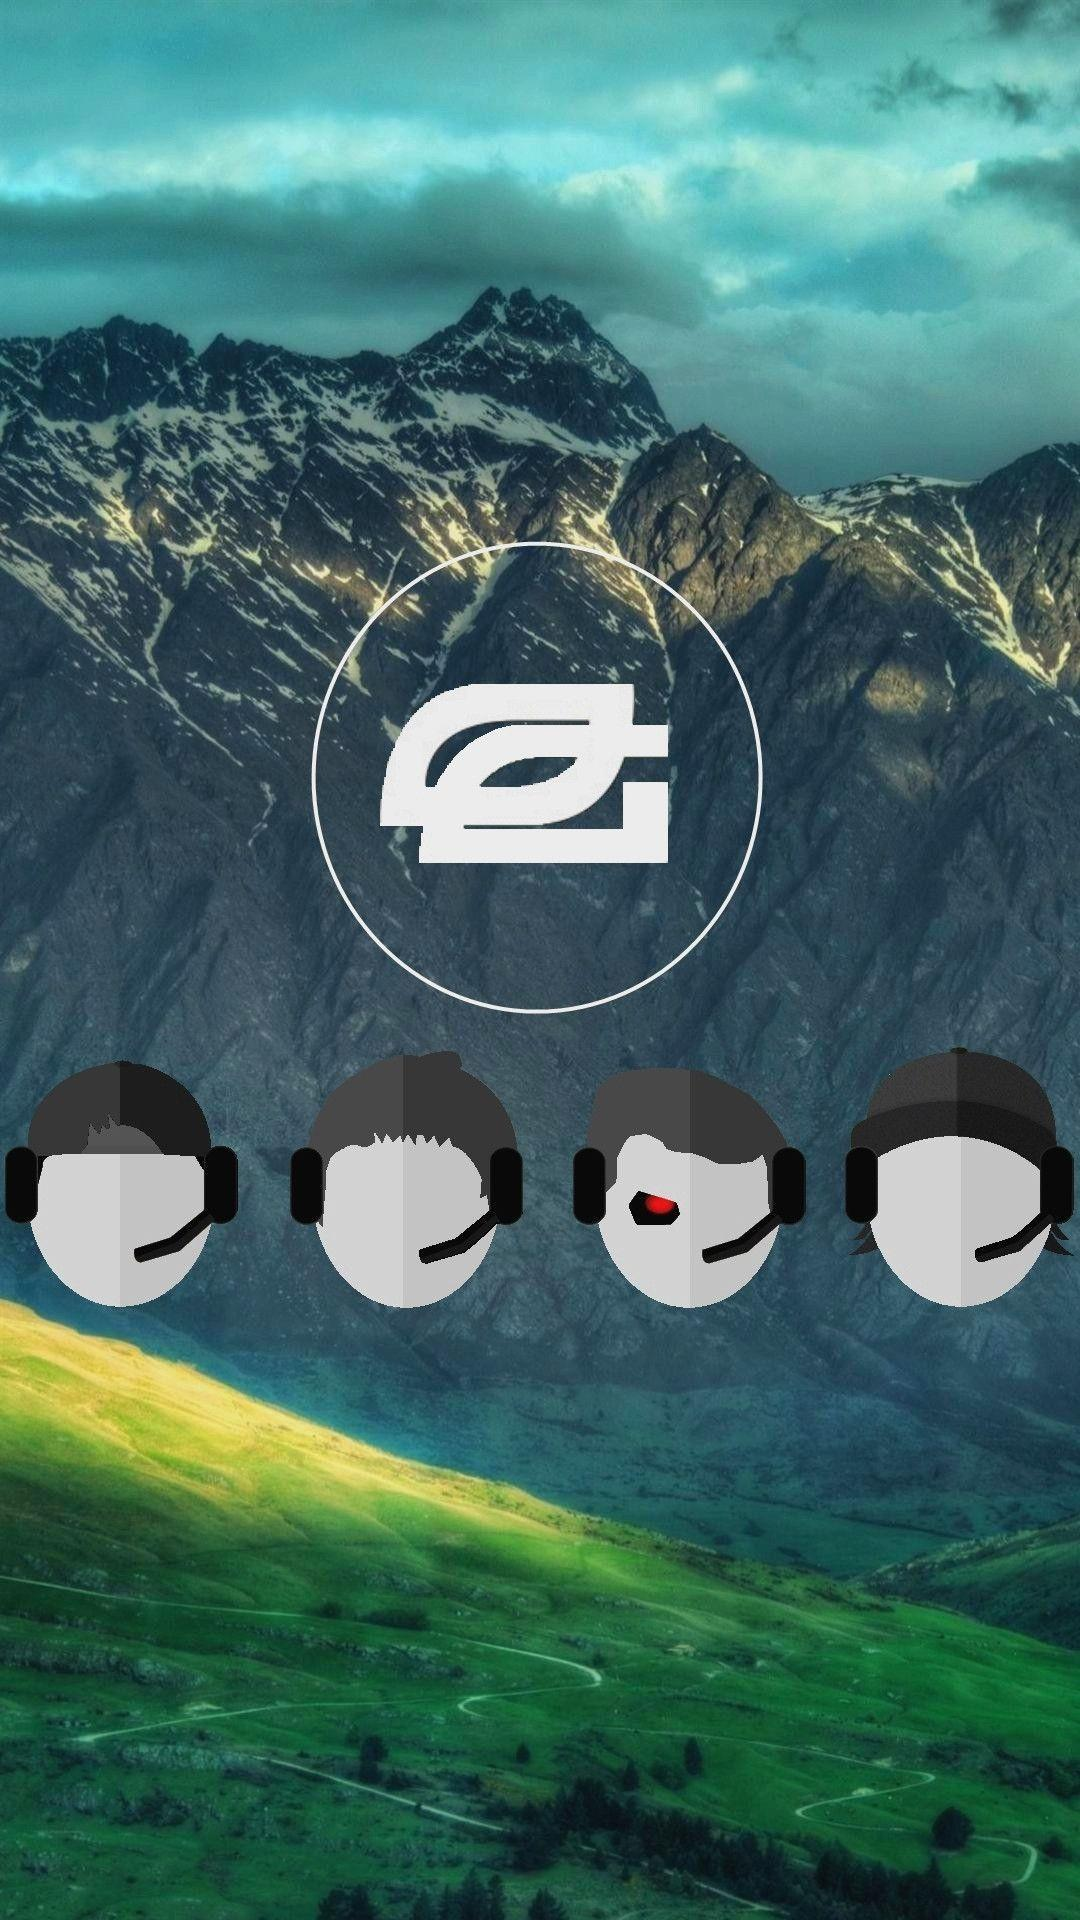 Optic Gaming Phone Wallpapers 1080X1920 : CoDCompetitive